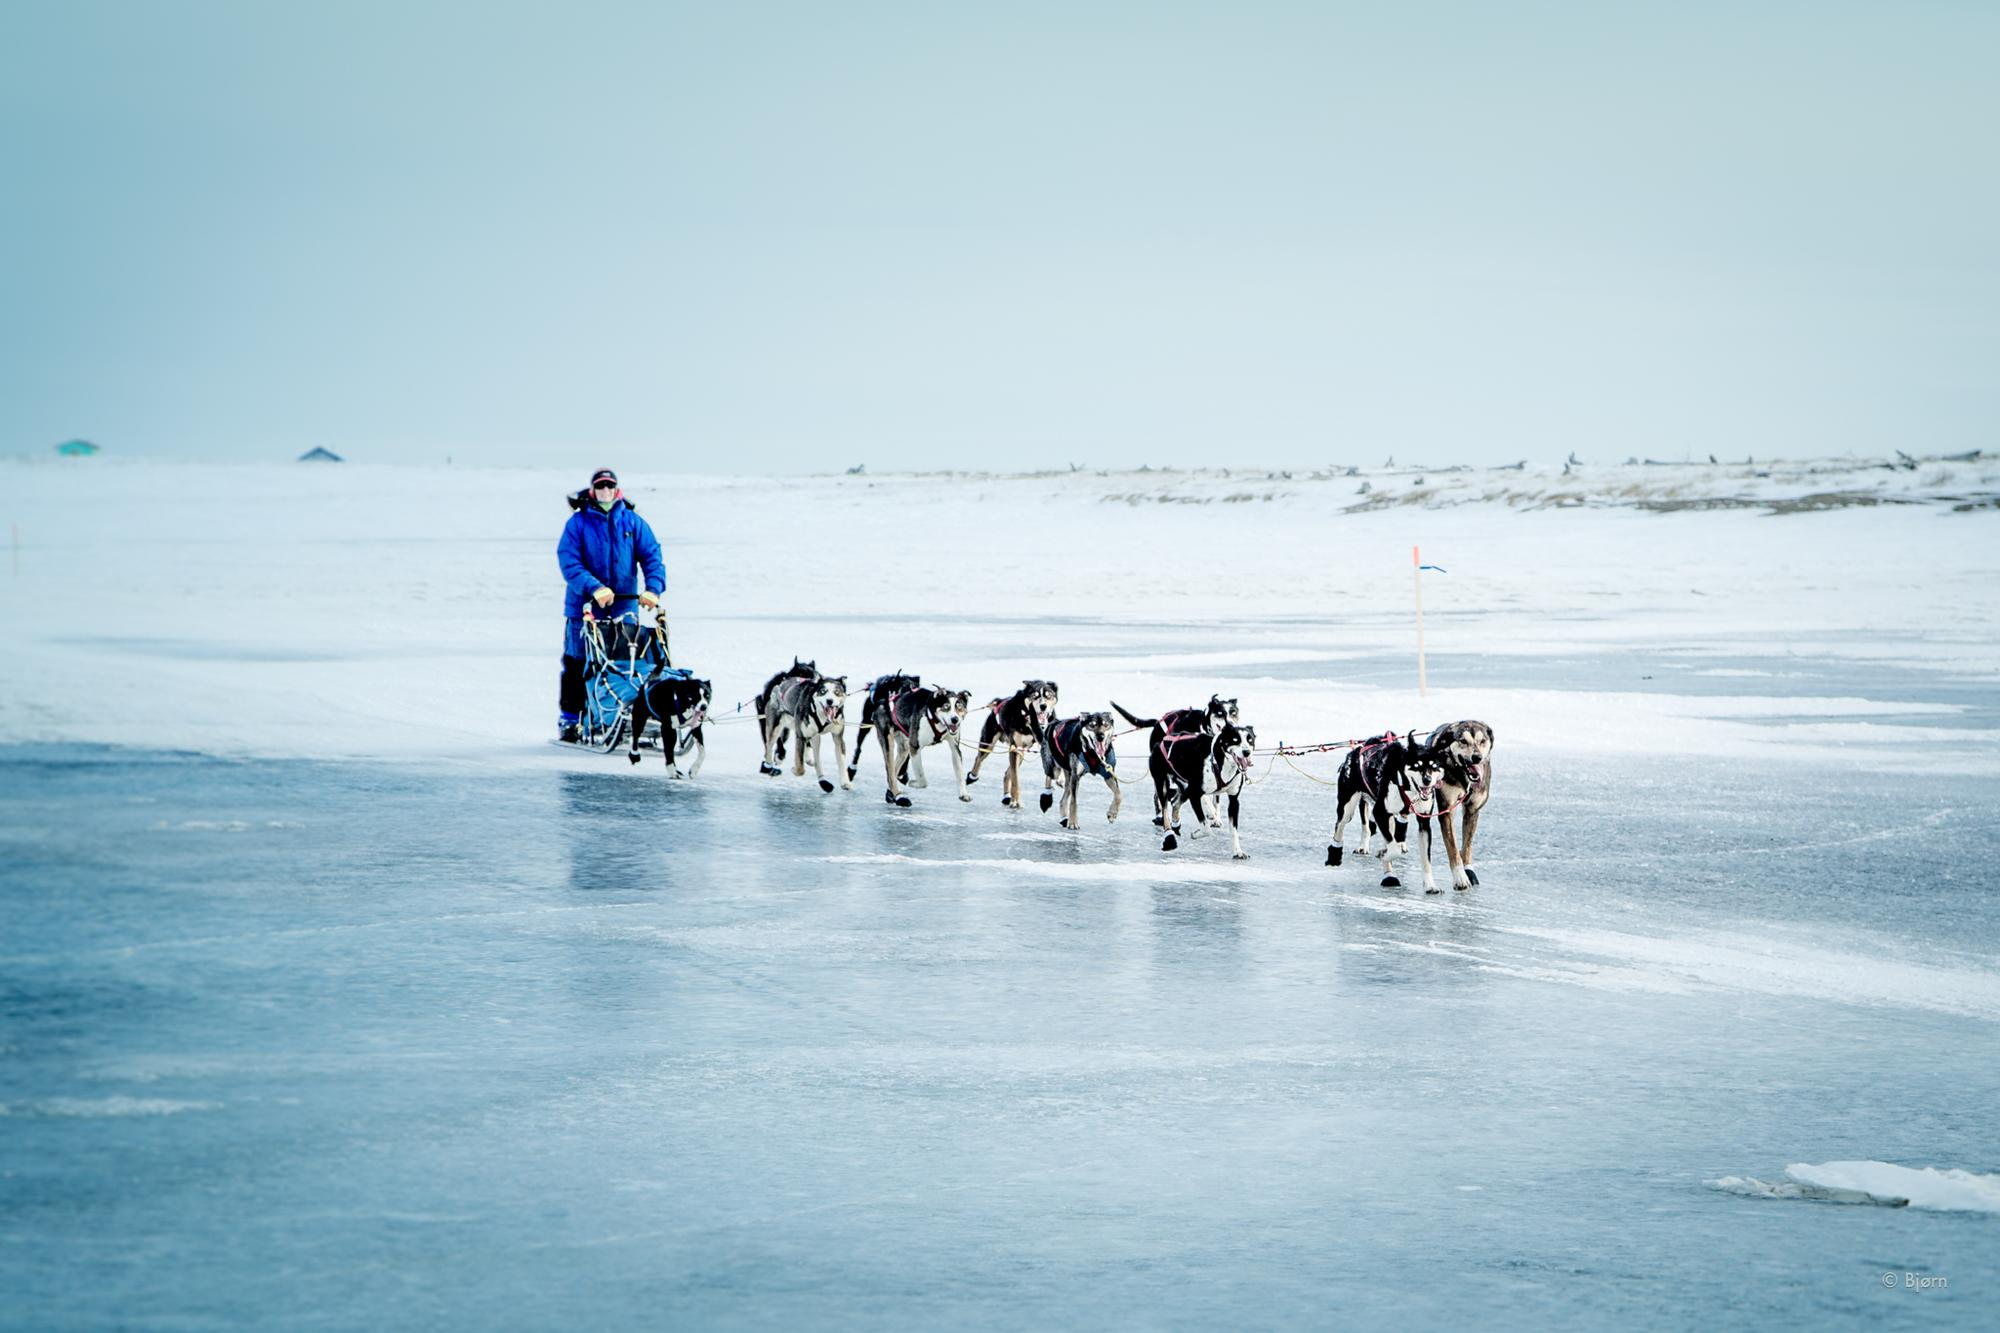 An Iditarod dog team make their way across glare ice near the finish line.